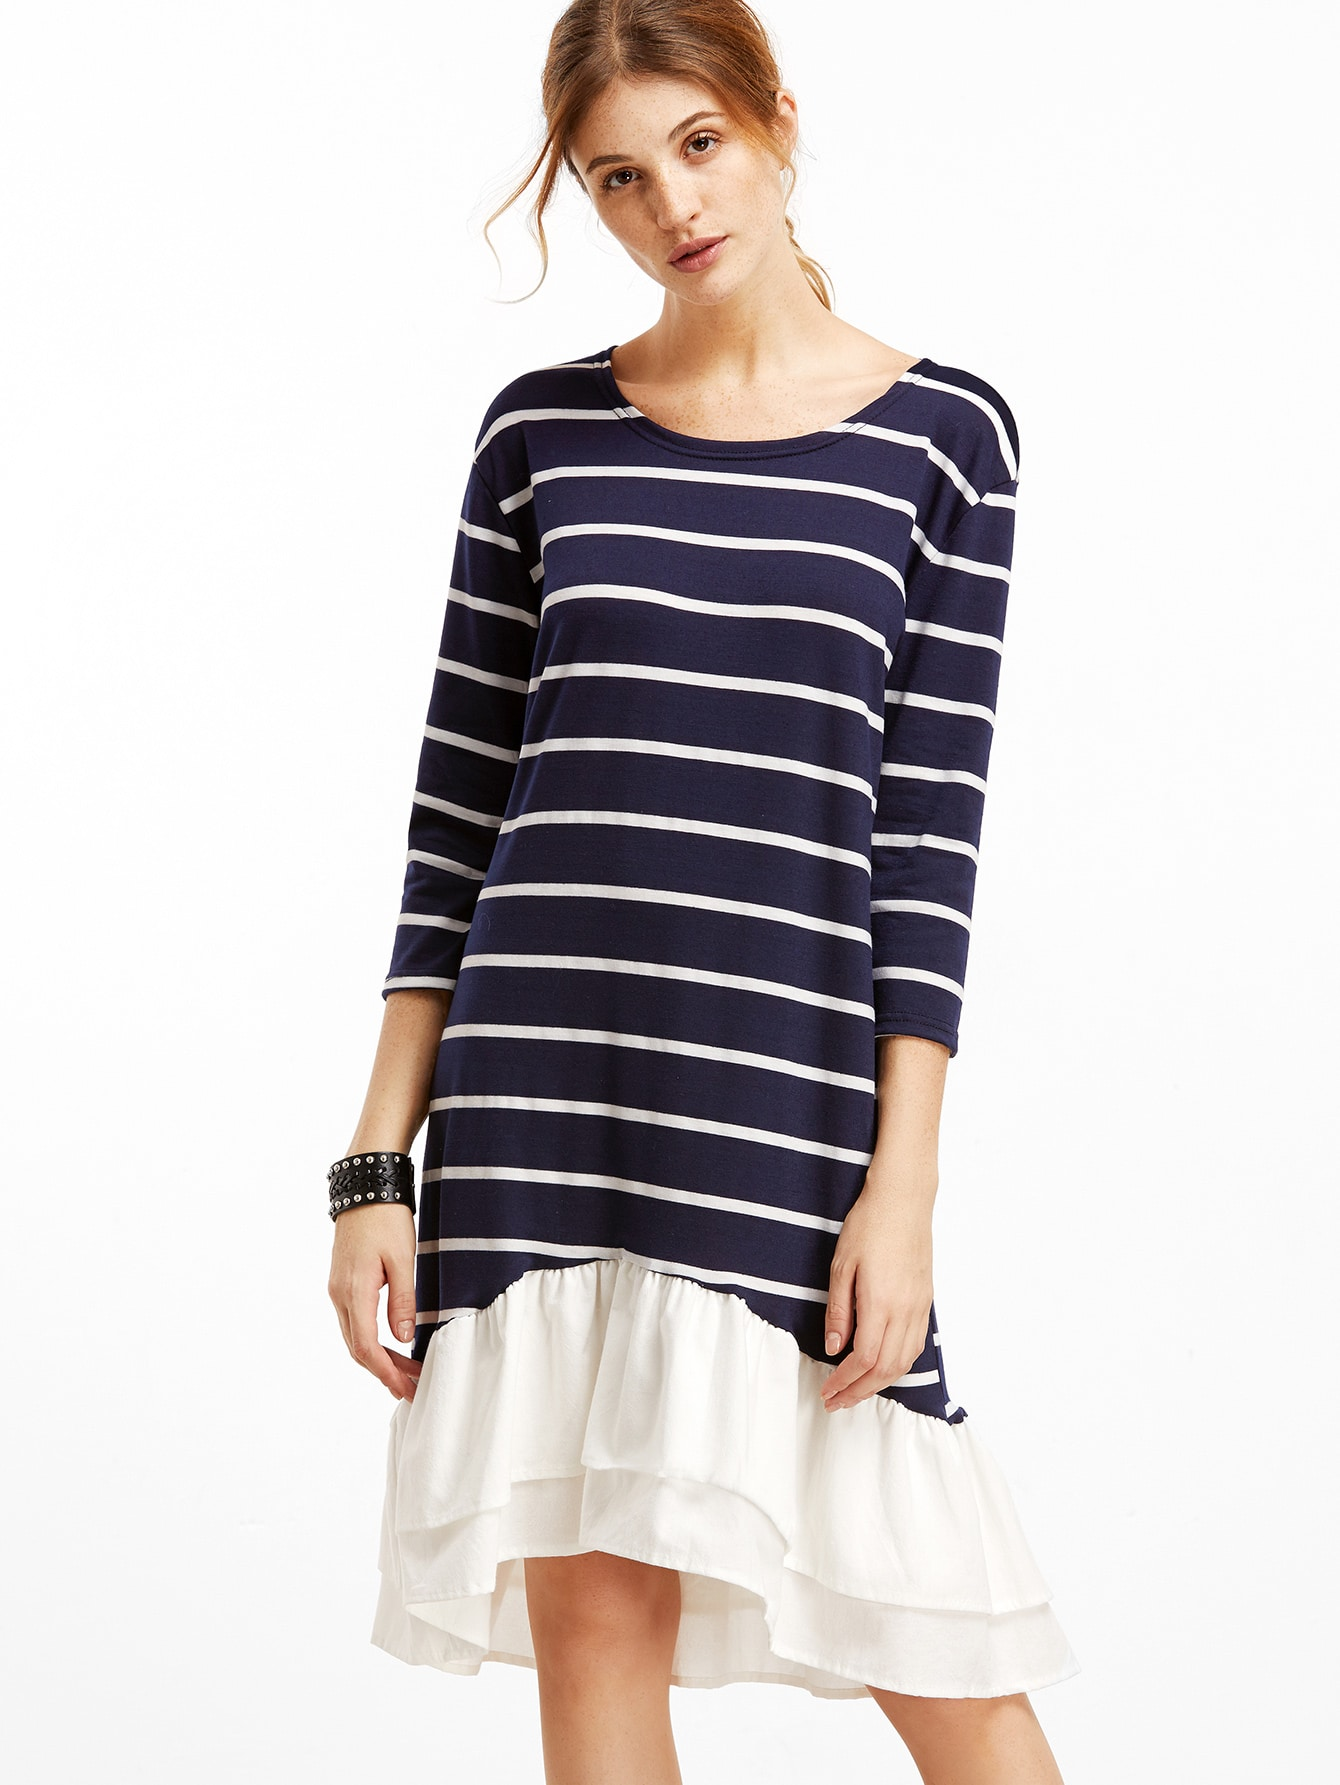 Contrast Striped Ruffle Hem High Low DressContrast Striped Ruffle Hem High Low Dress<br><br>color: Navy<br>size: L,M,XL